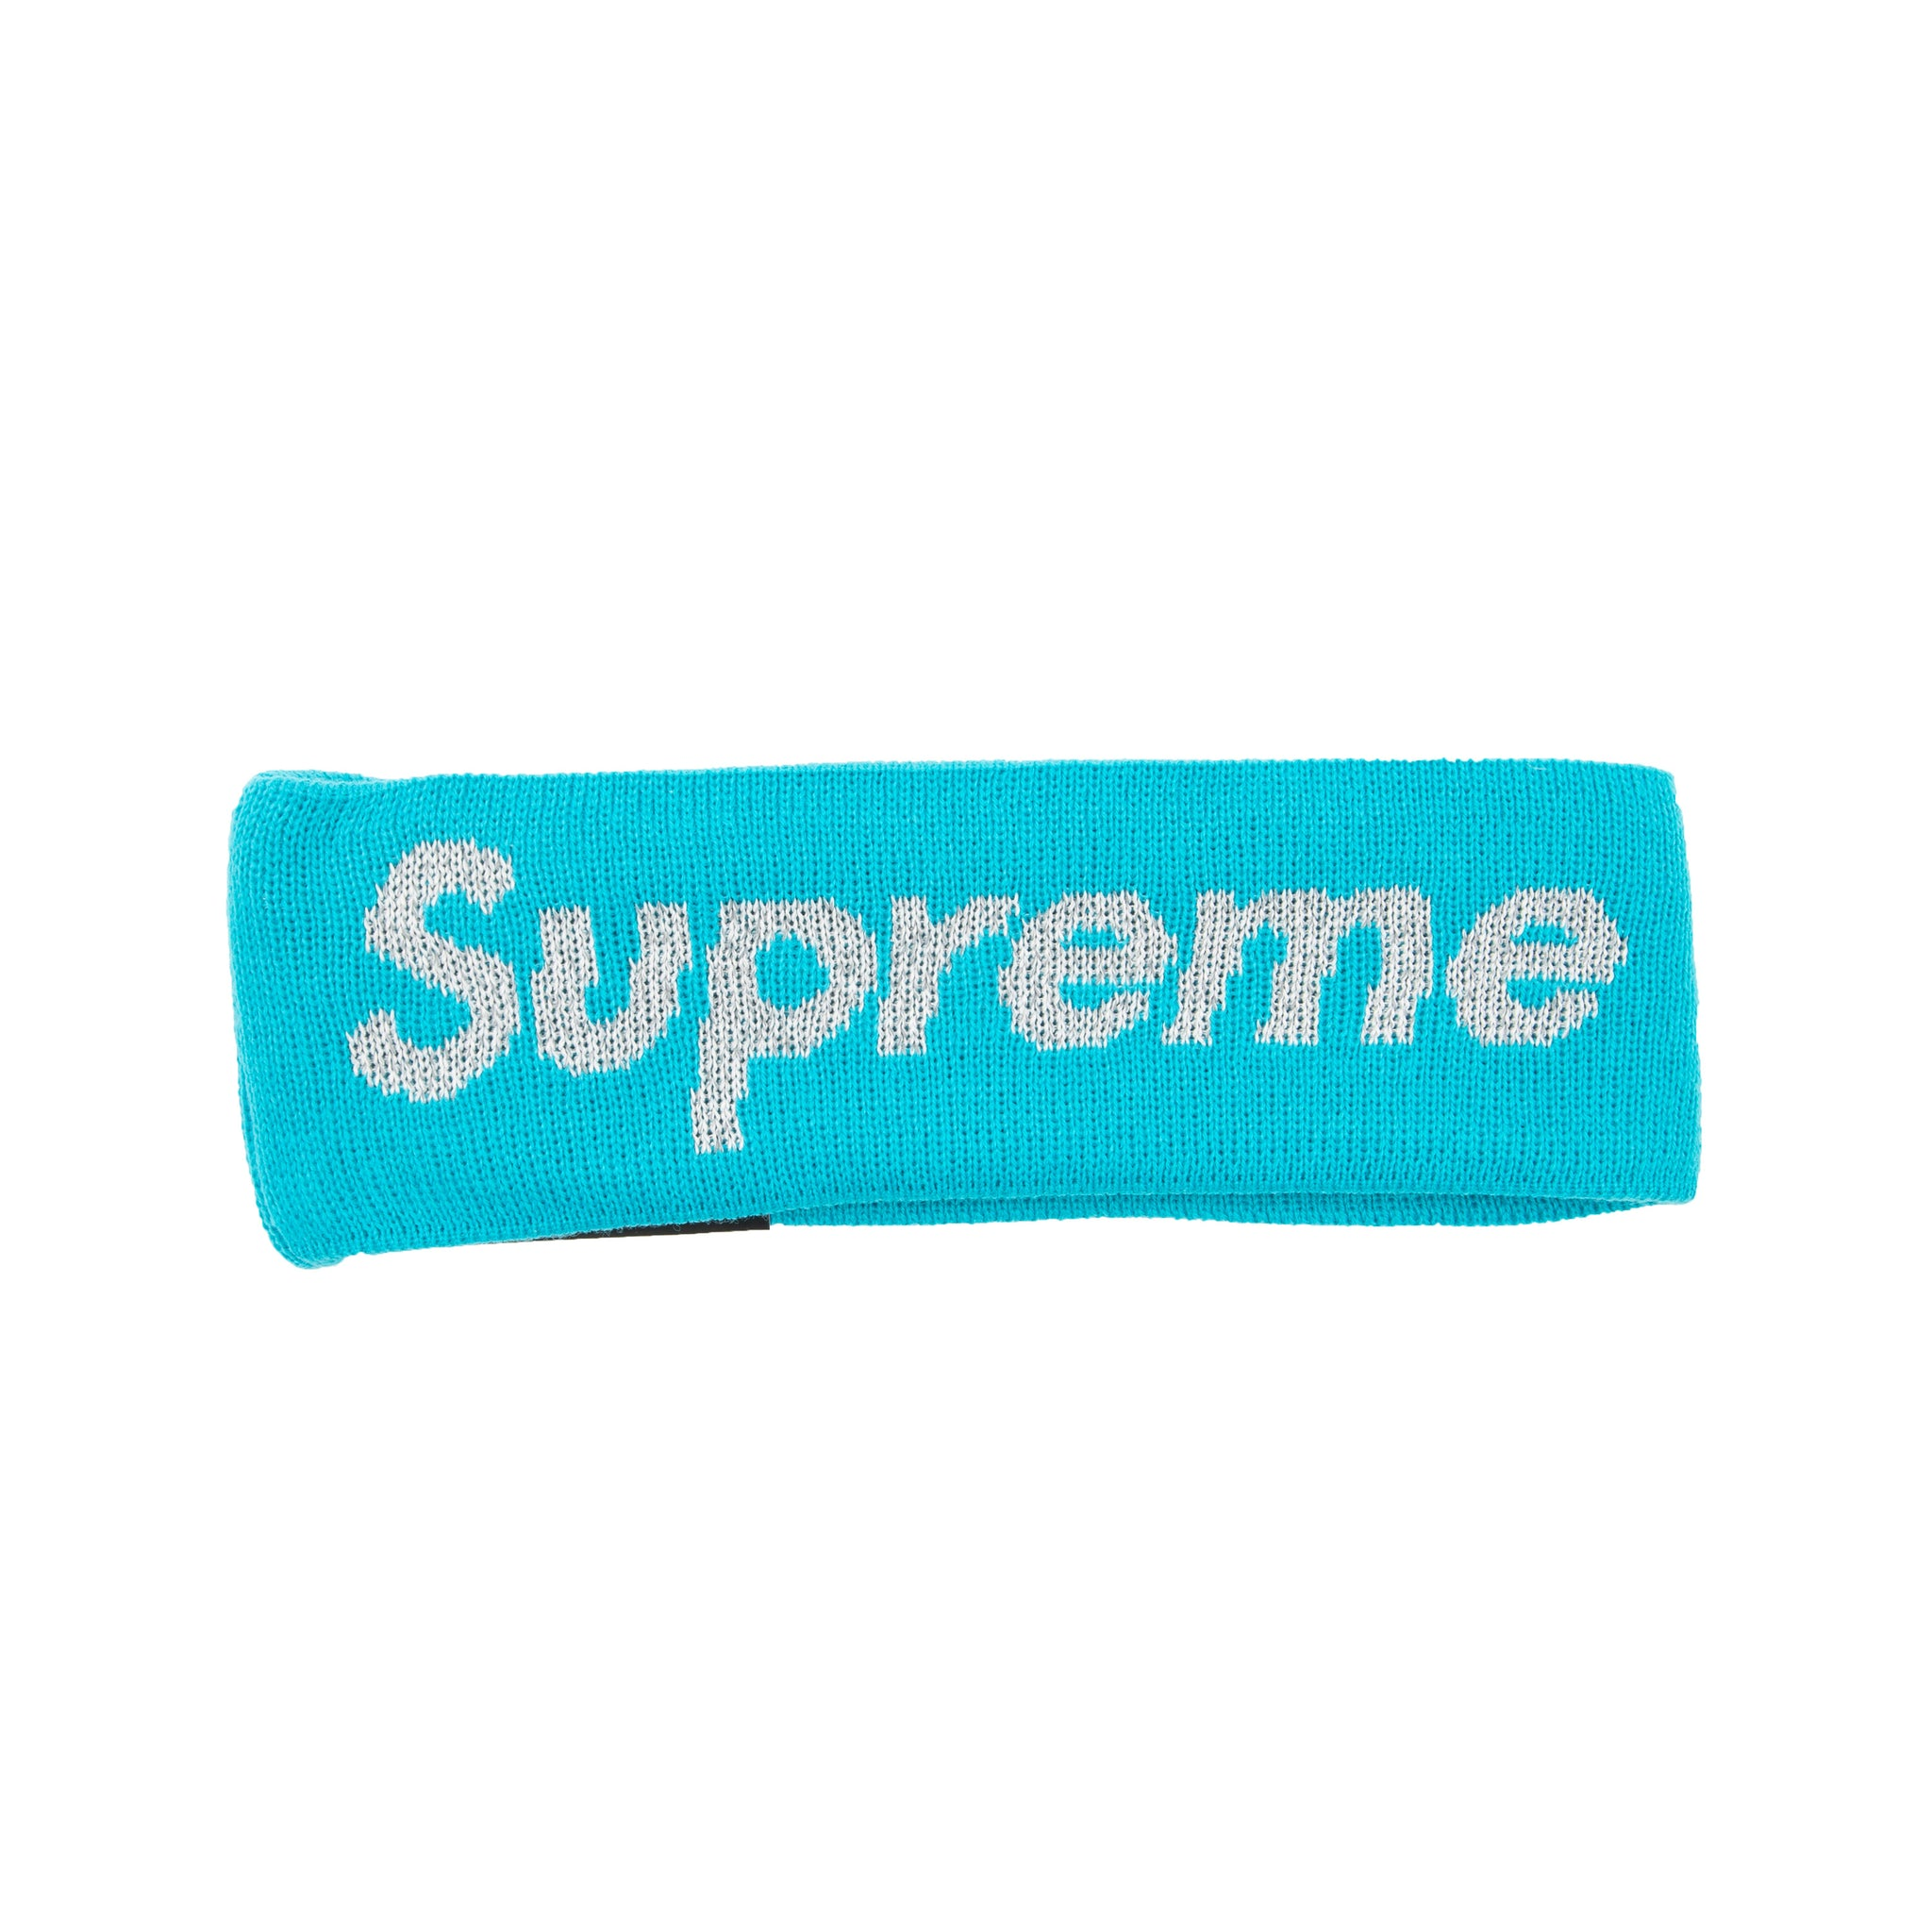 Supreme Teal New Era 3M Headband